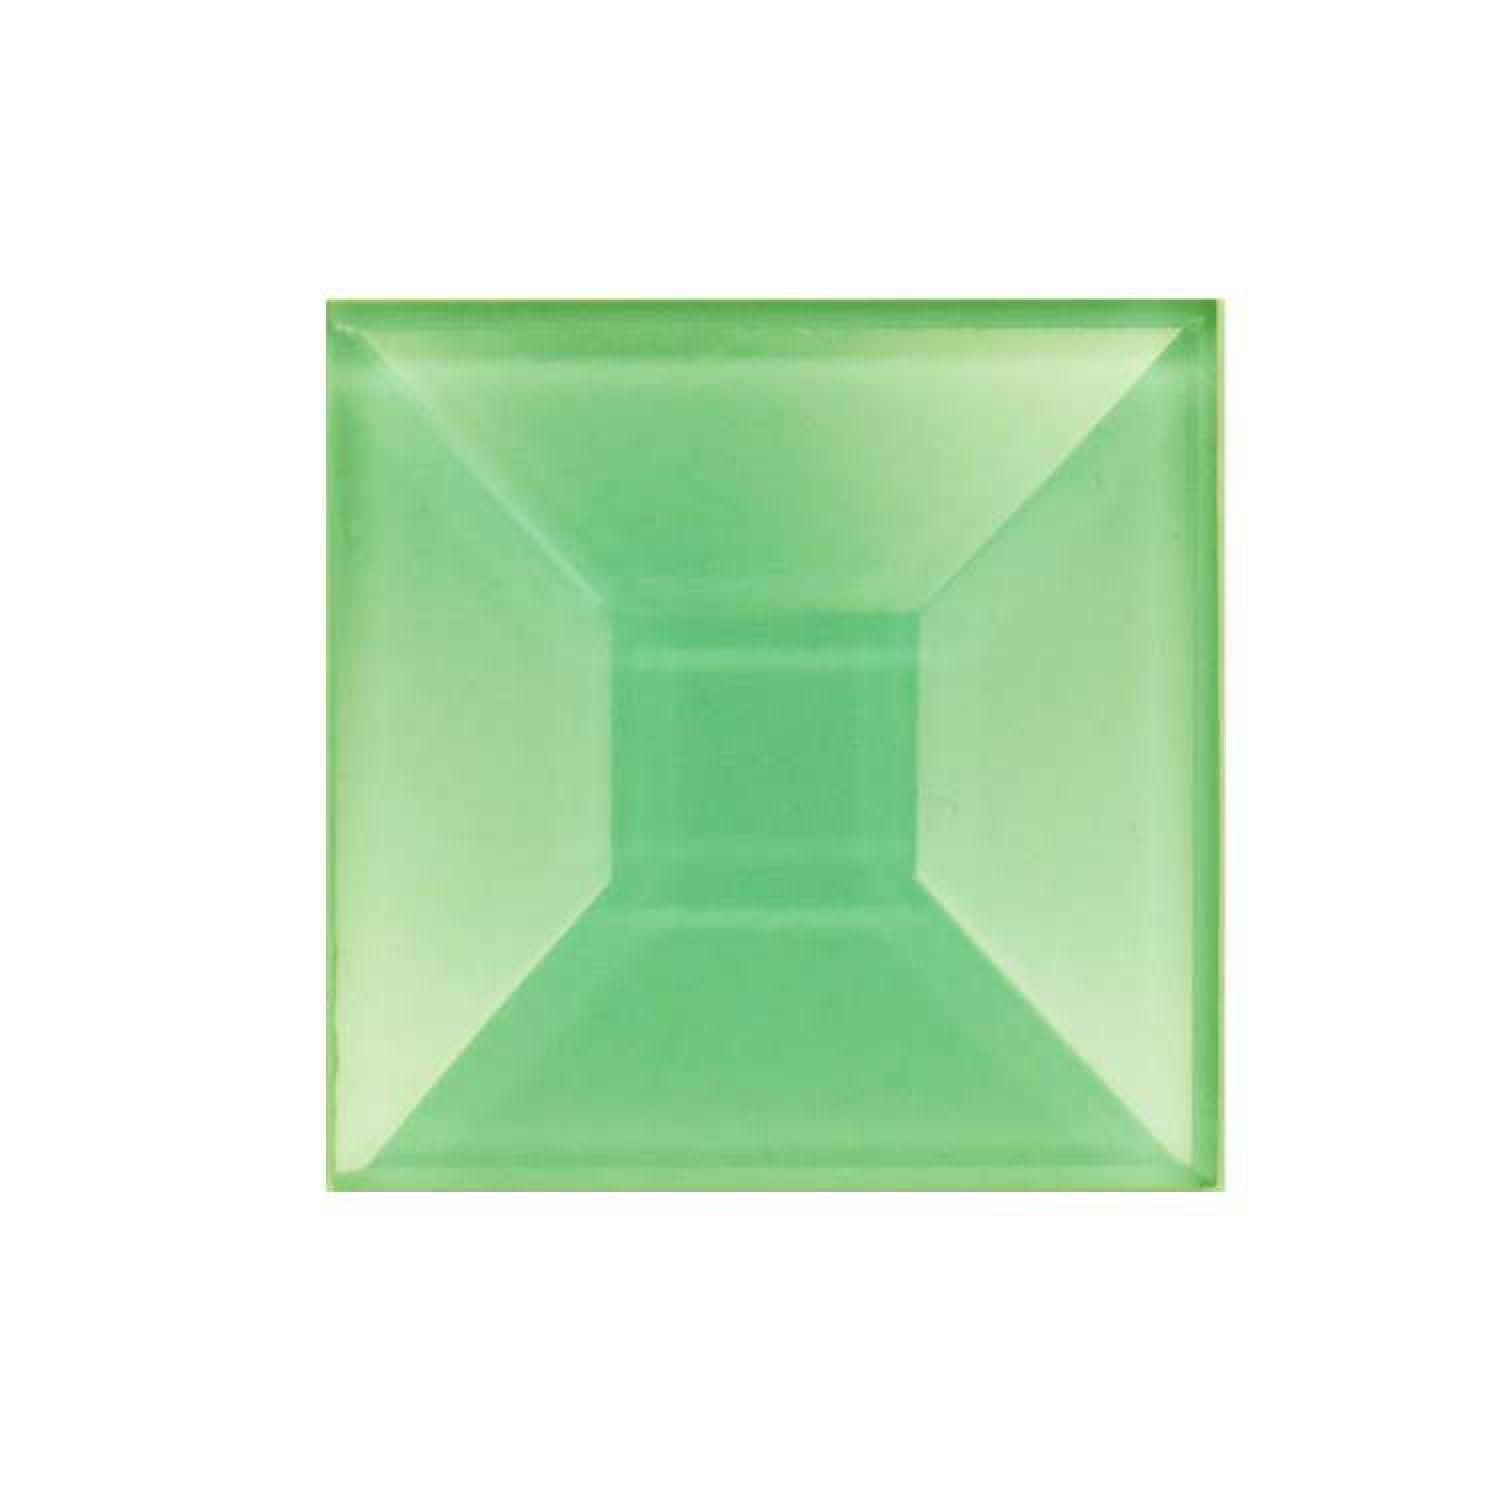 1 Square Green Bevel